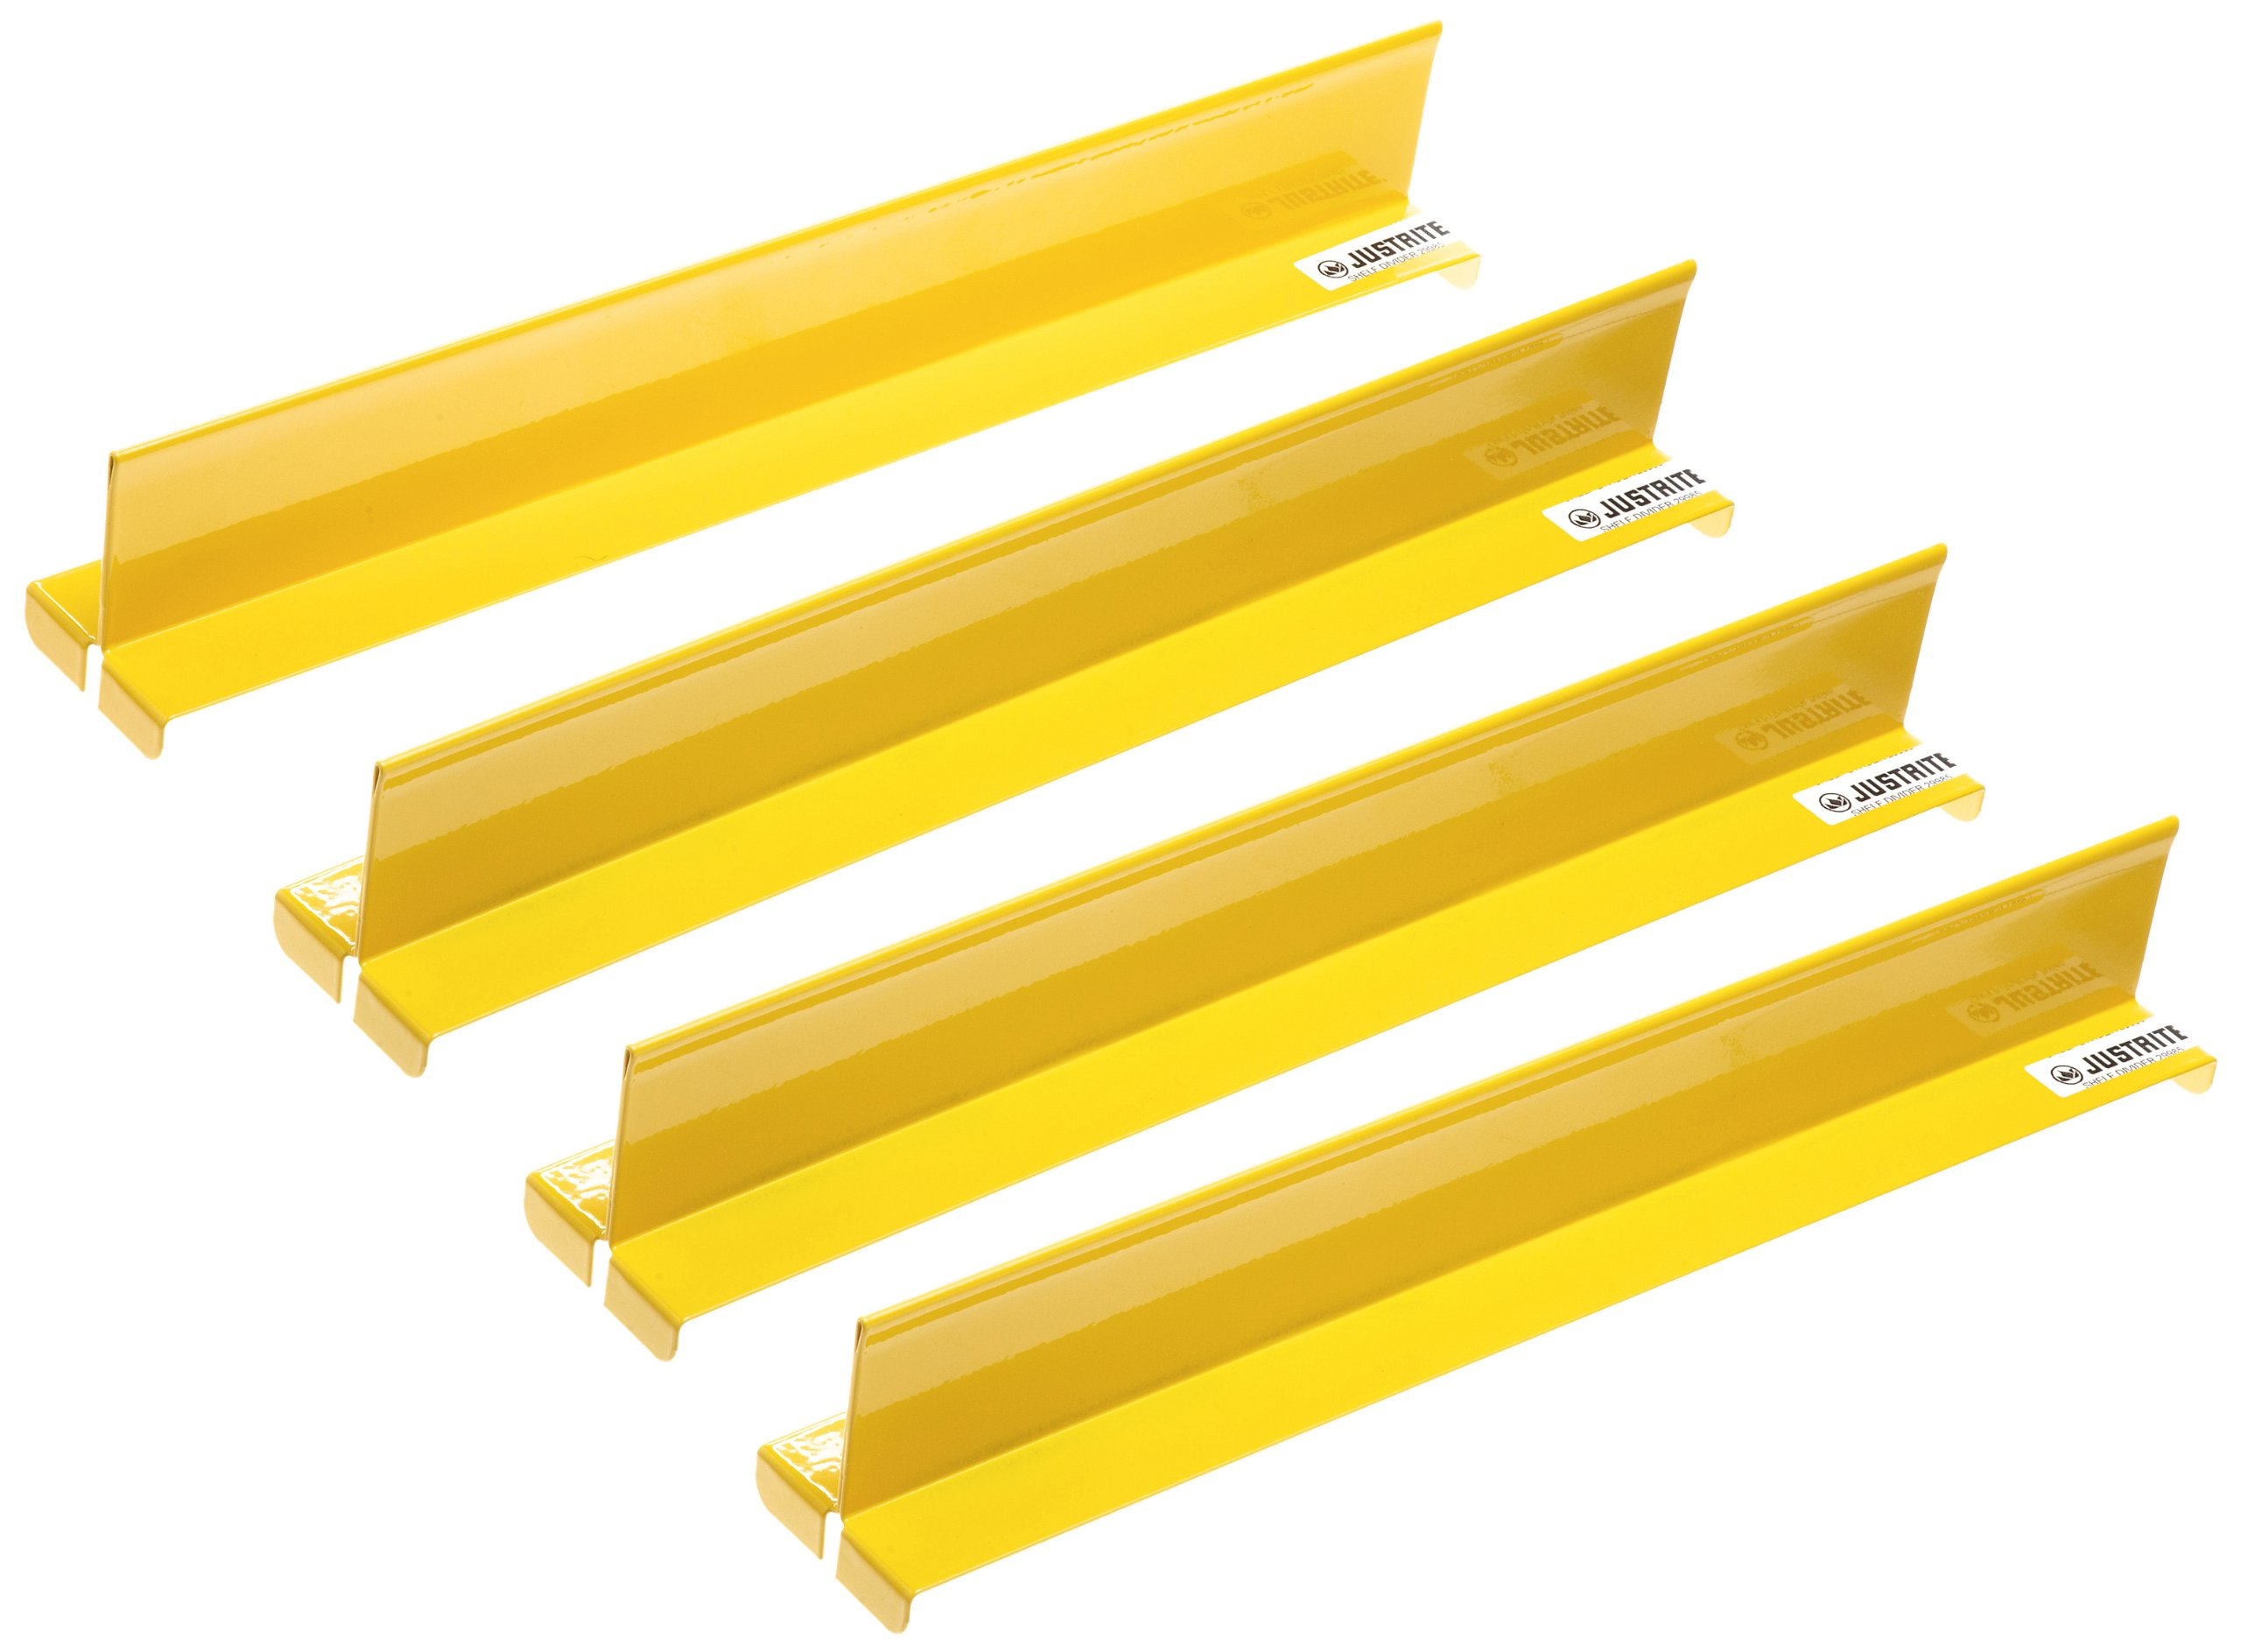 Justrite 29985 4 Piece Yellow Steel Shelf Divider Set for Cabinets, 14-5/32'' Length x 2'' Width x 2-1/64'' Height